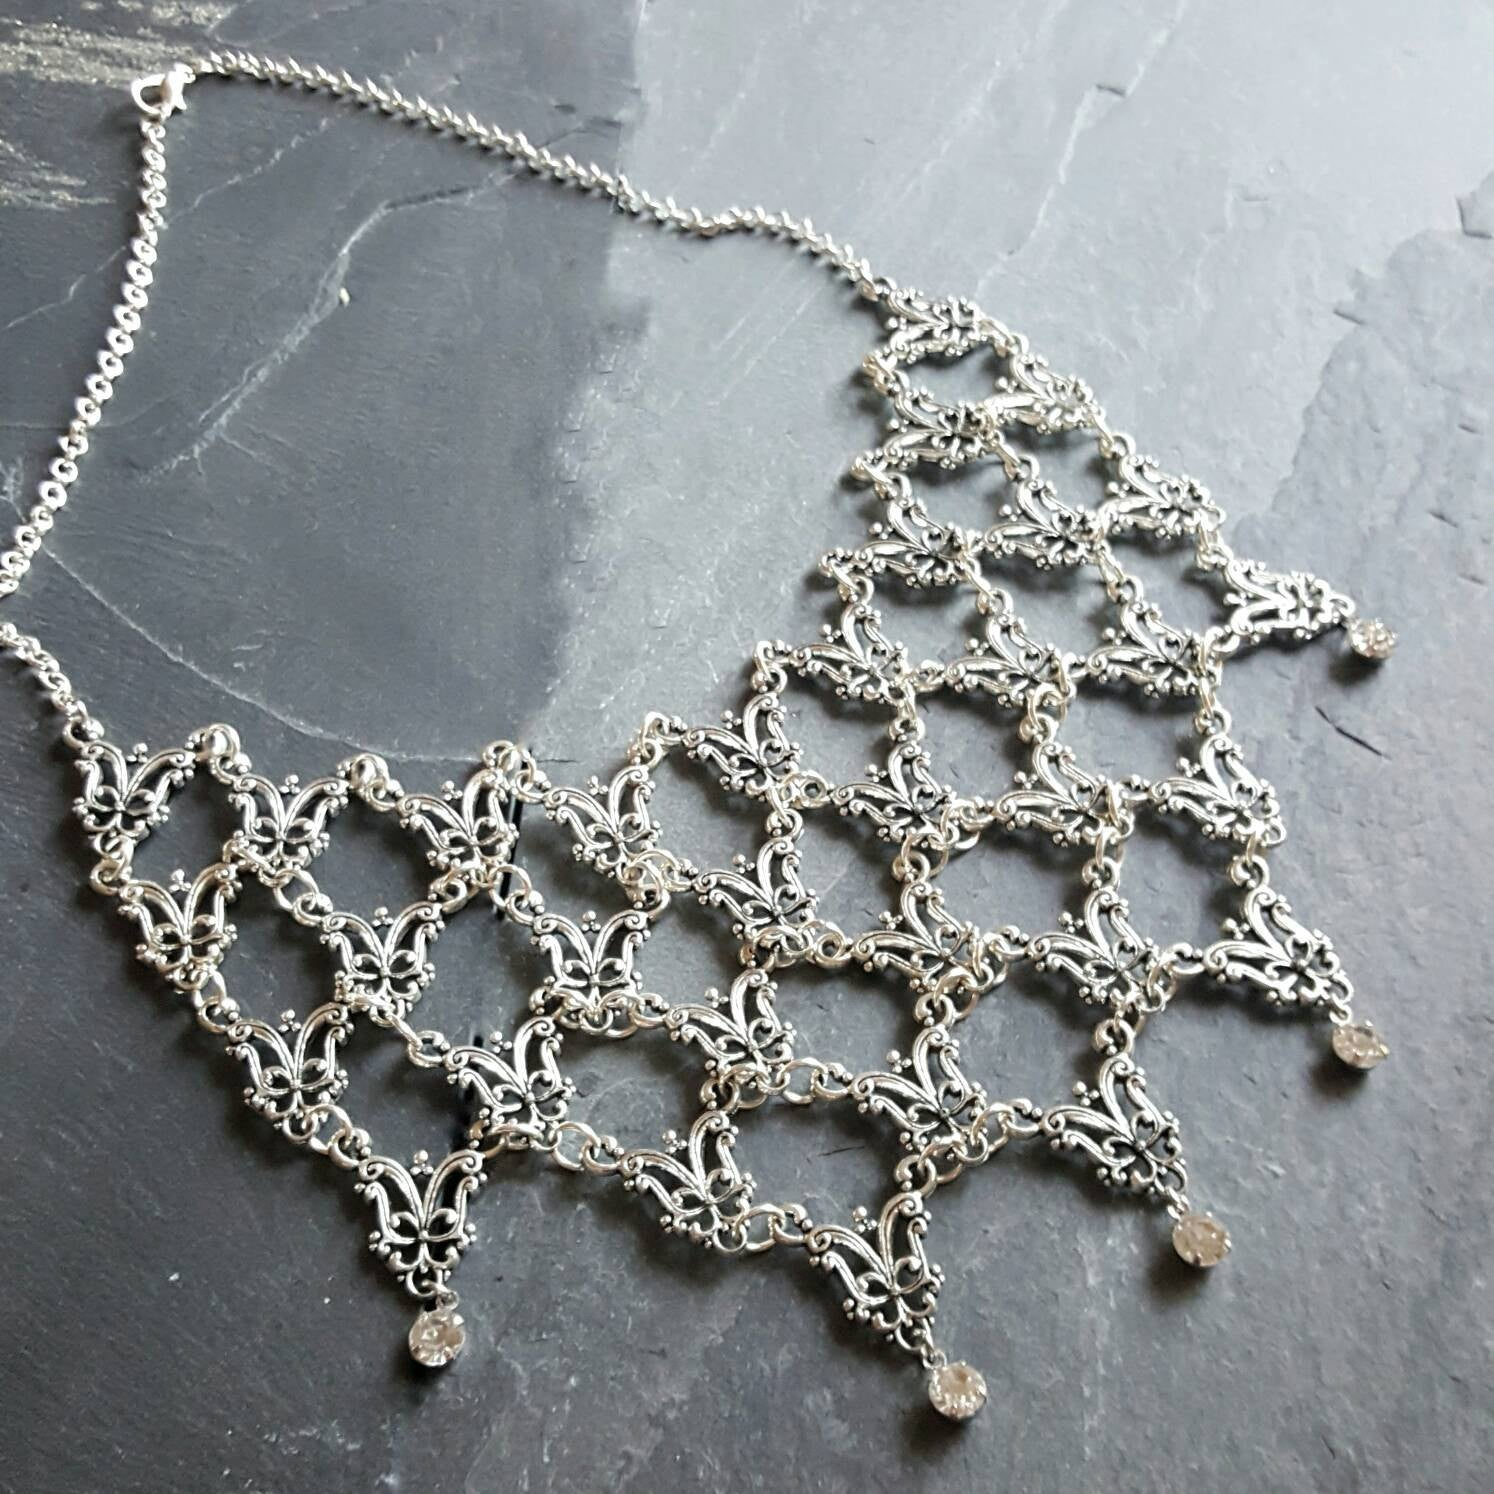 Silver Victorian Necklace - Bridal Jewelry - Ren Faire Costume - Victorian Jewelry - Fantasy Jewelry - Prom Jewelry - Handmade Gift Idea - DRAVYNMOOR